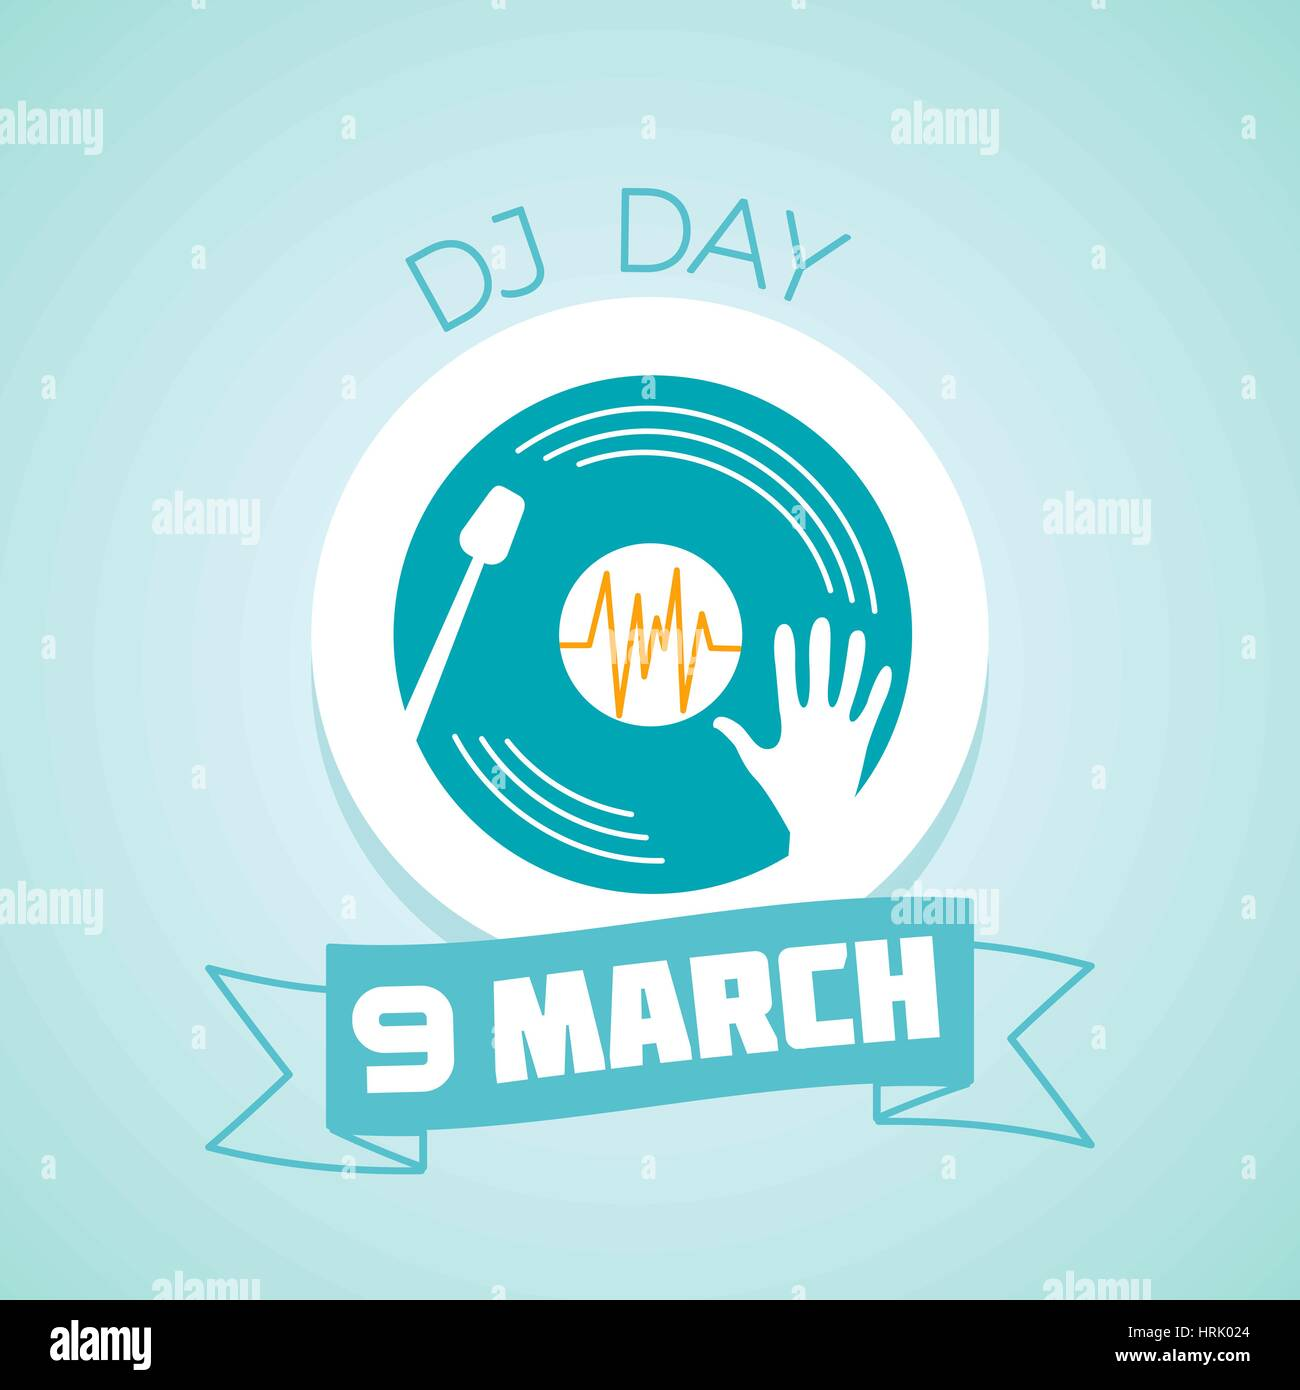 Calendar for each day on march 9 greeting card holiday dj day calendar for each day on march 9 greeting card holiday dj day icon in the linear style kristyandbryce Images